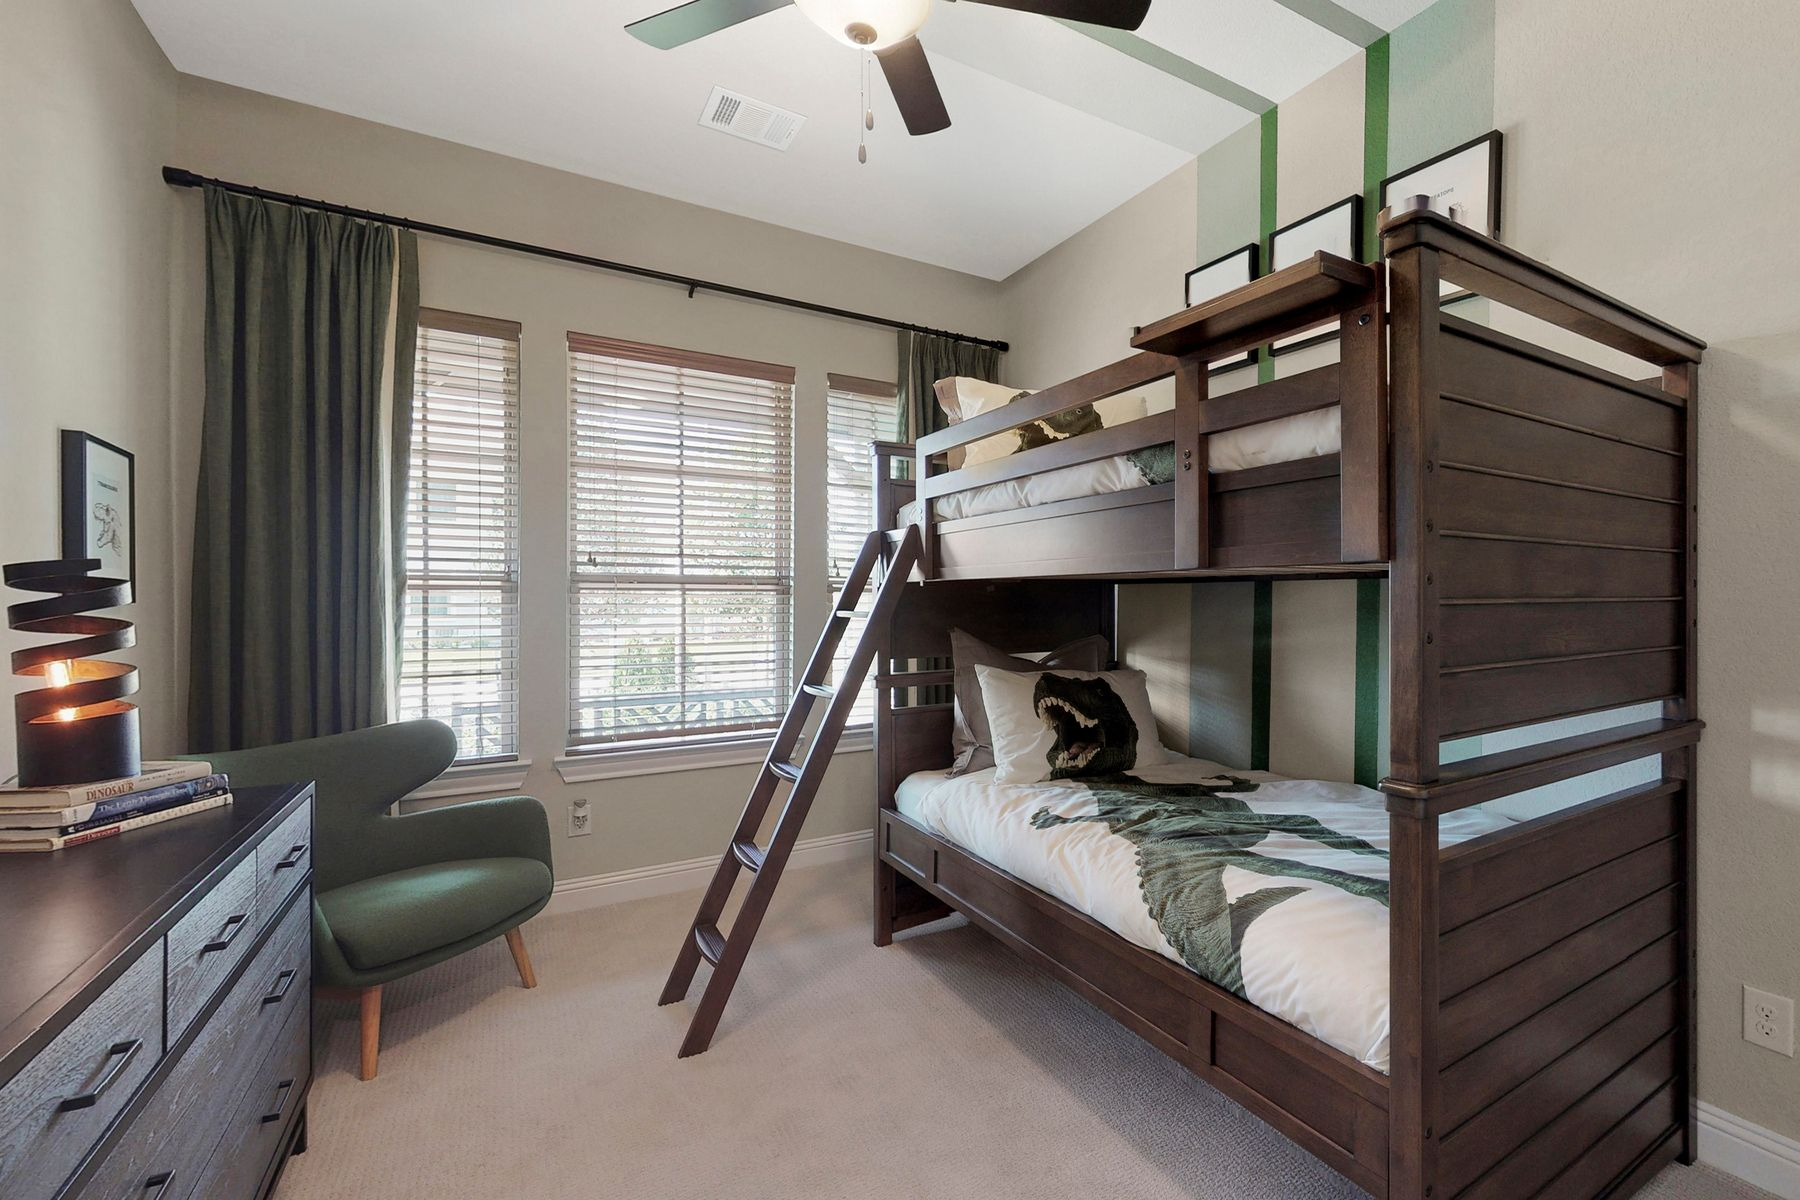 Bedroom featured in the Coronado By M/I Homes in Houston, TX